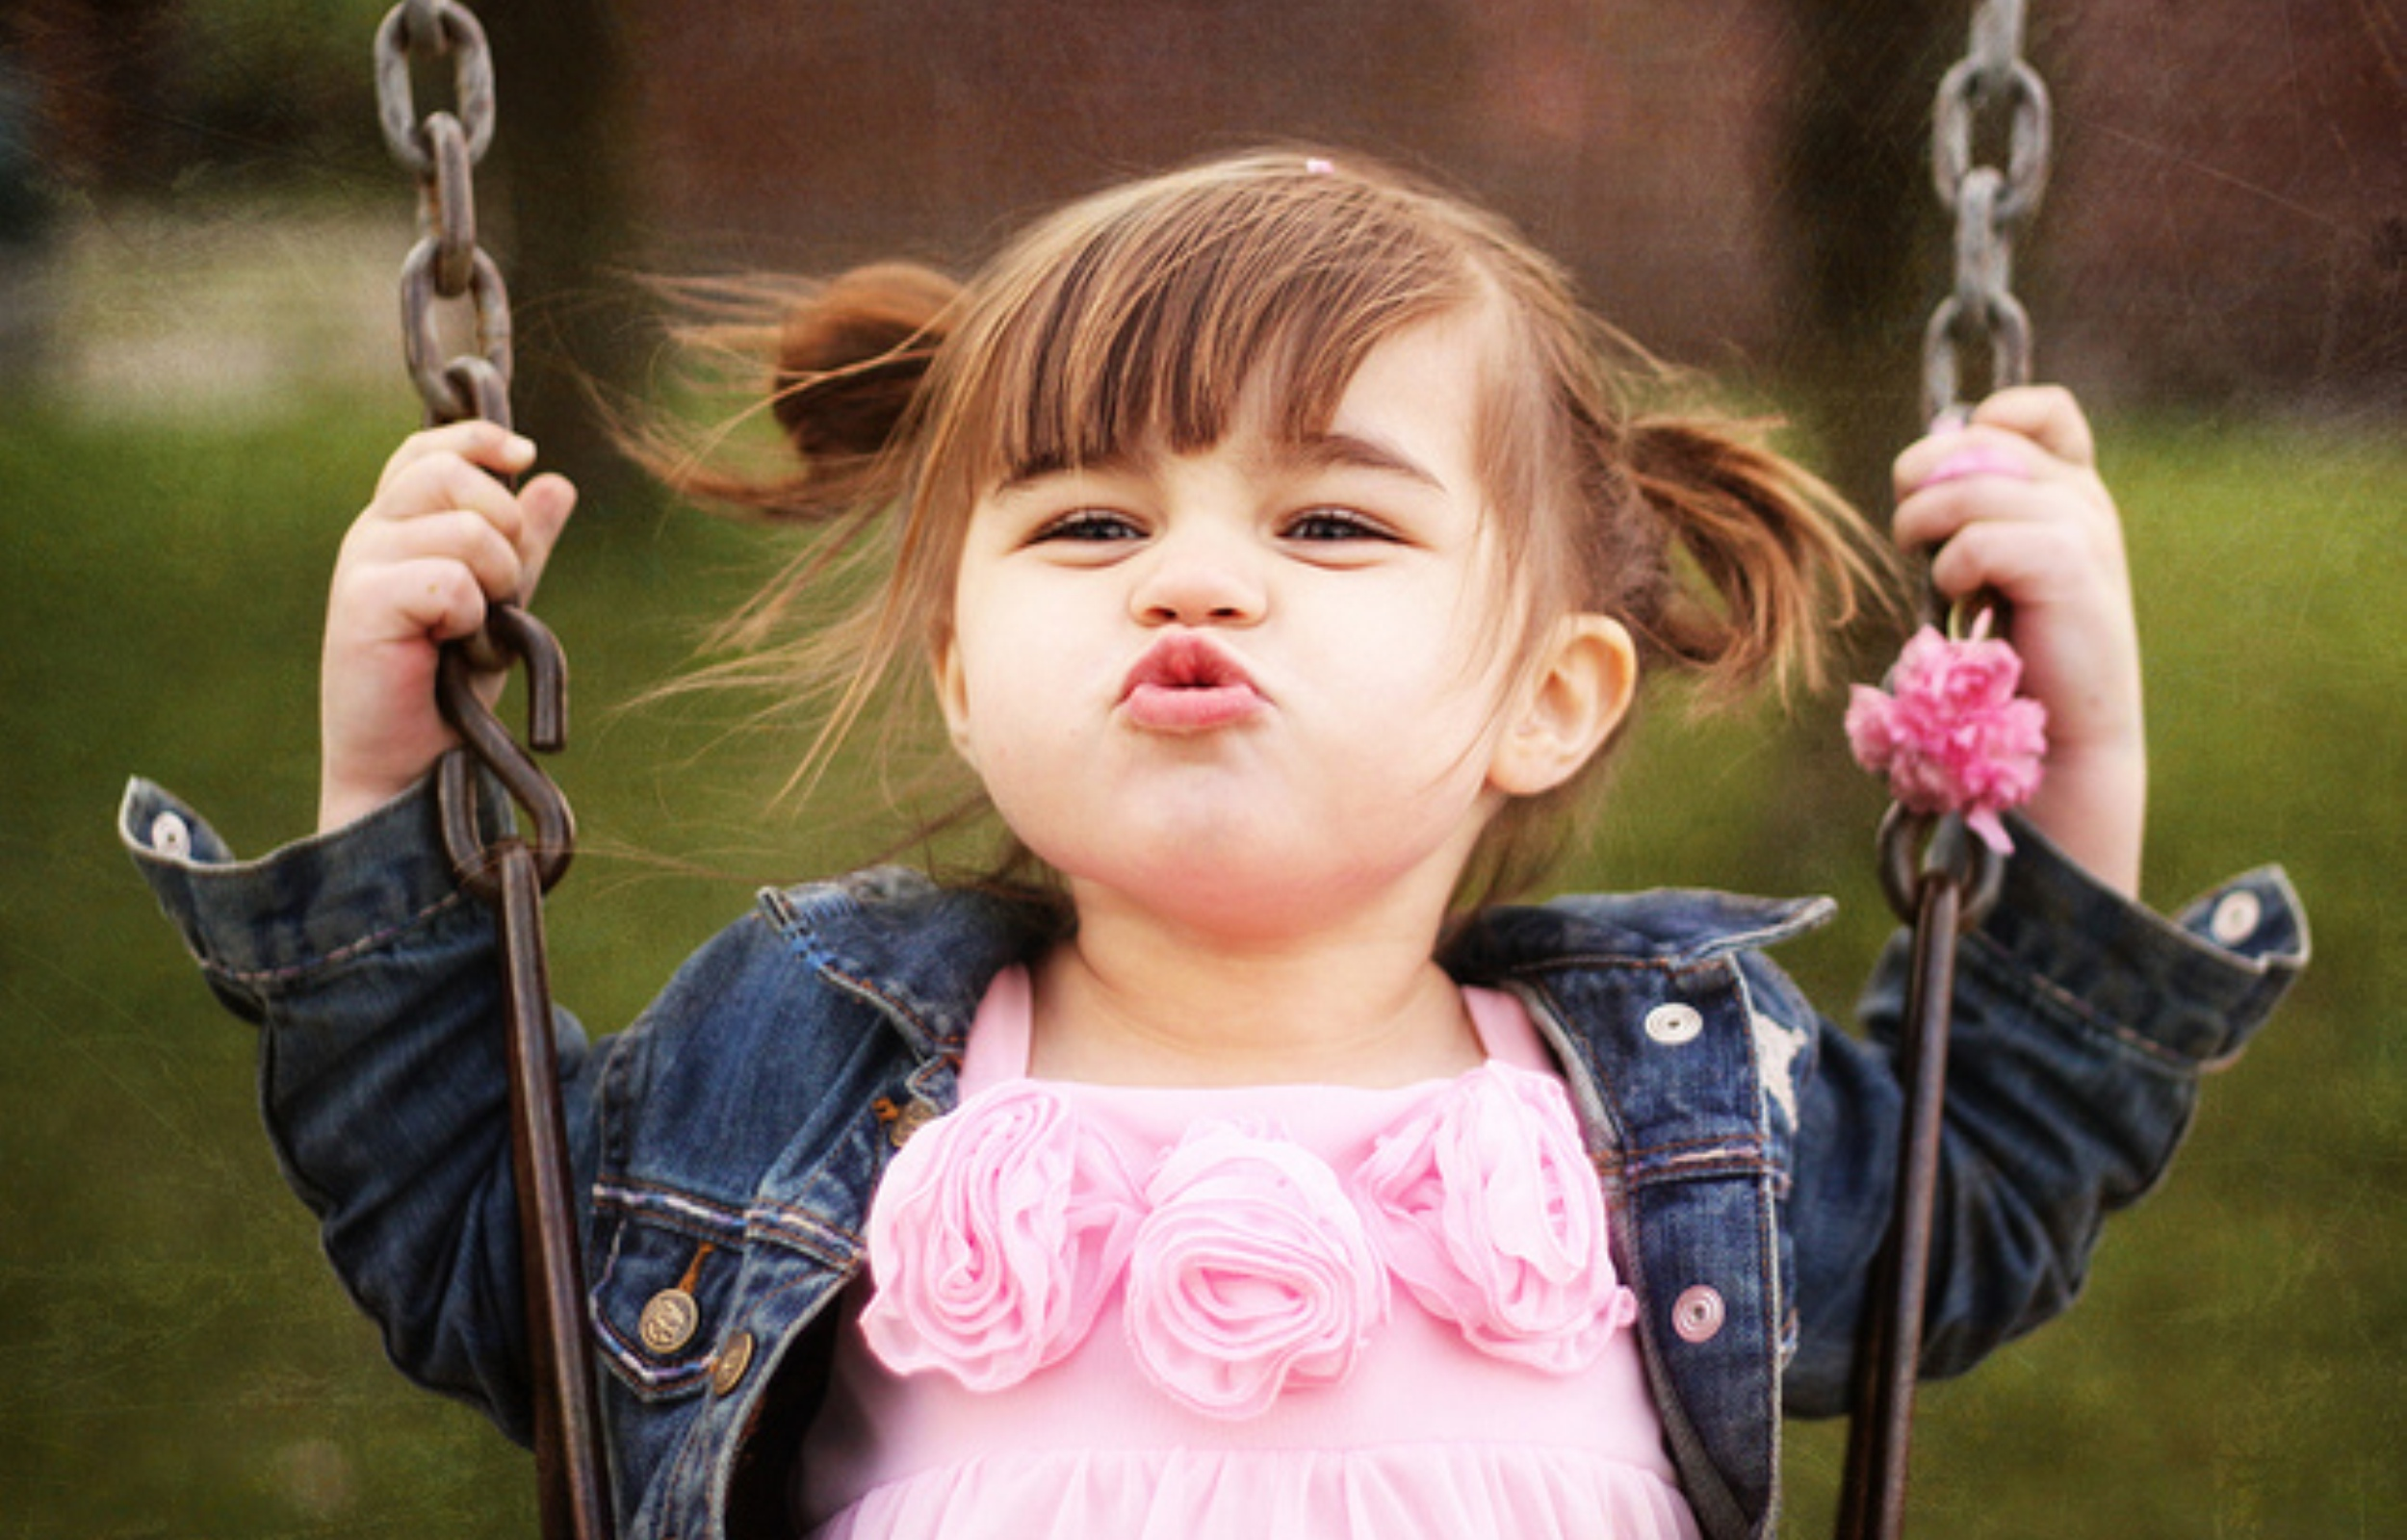 Cute Baby Girl Wallpapers For Mobile The Art Mad Wallpapers 2500x1600